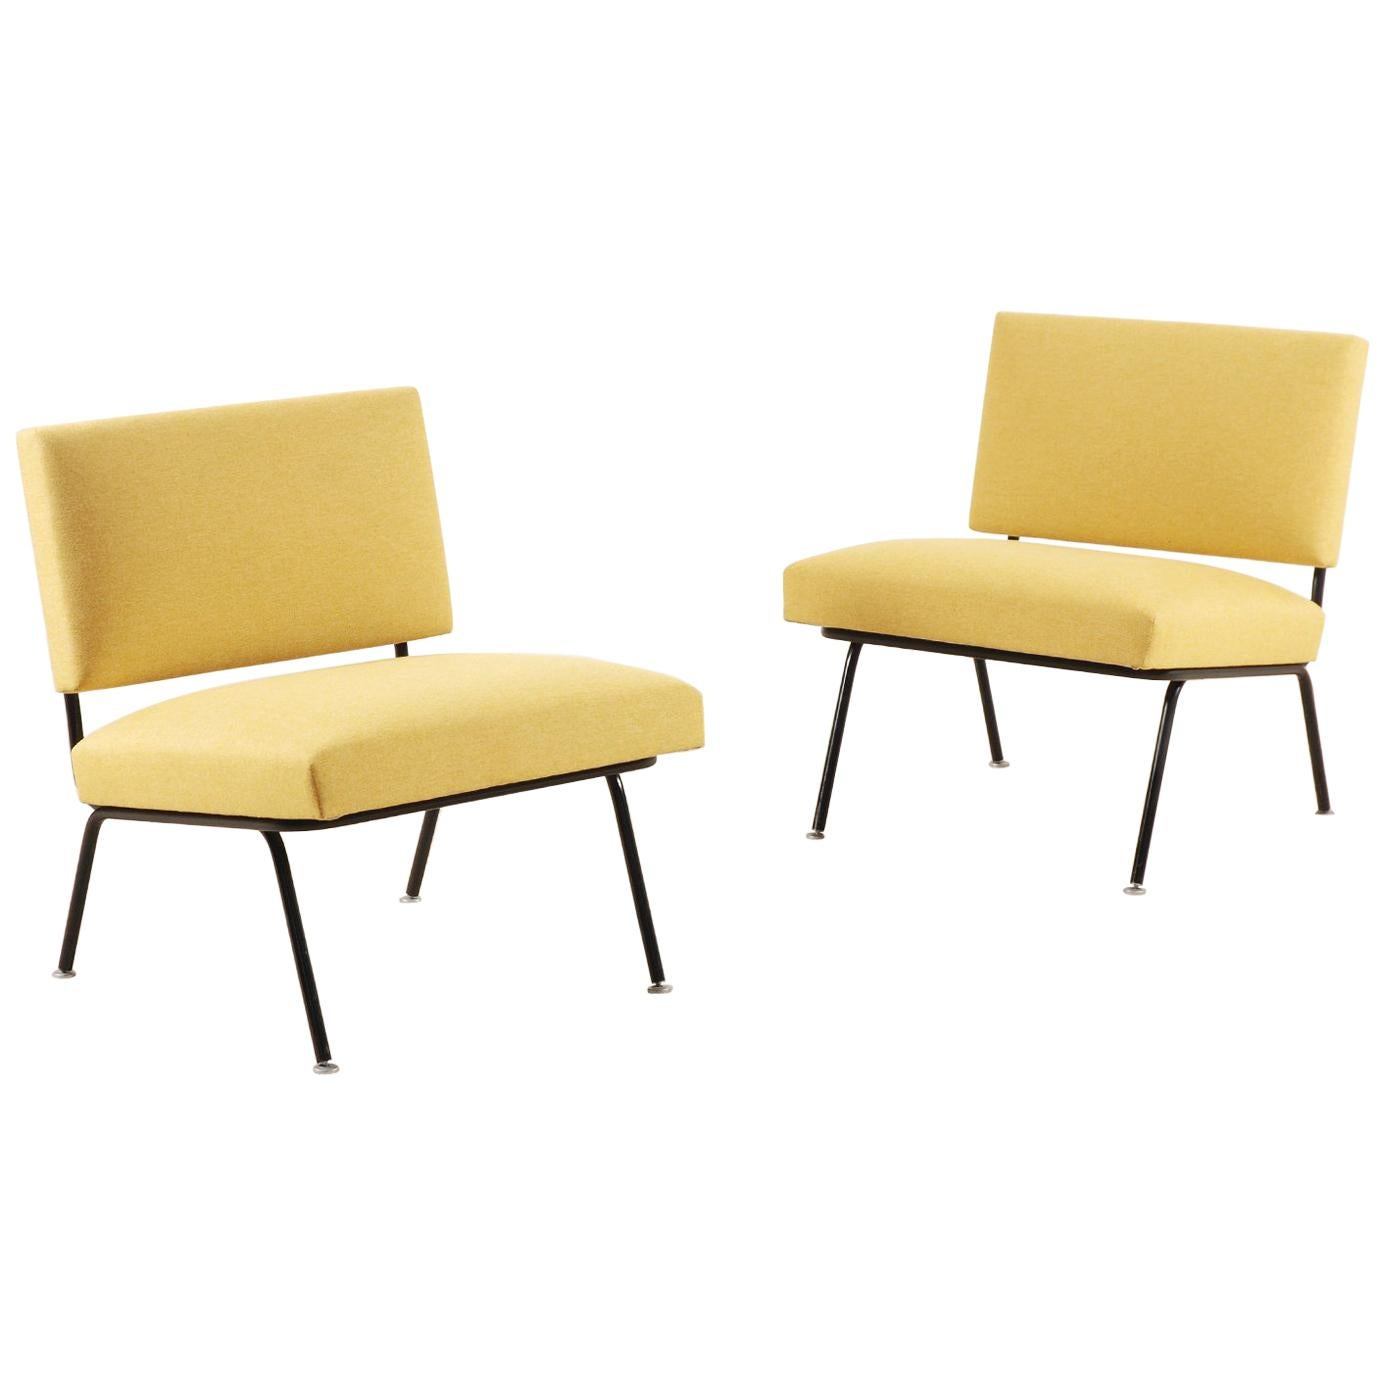 Knoll International Pair Of Florence Knoll Easy Chairs For Knoll International Circa 1955